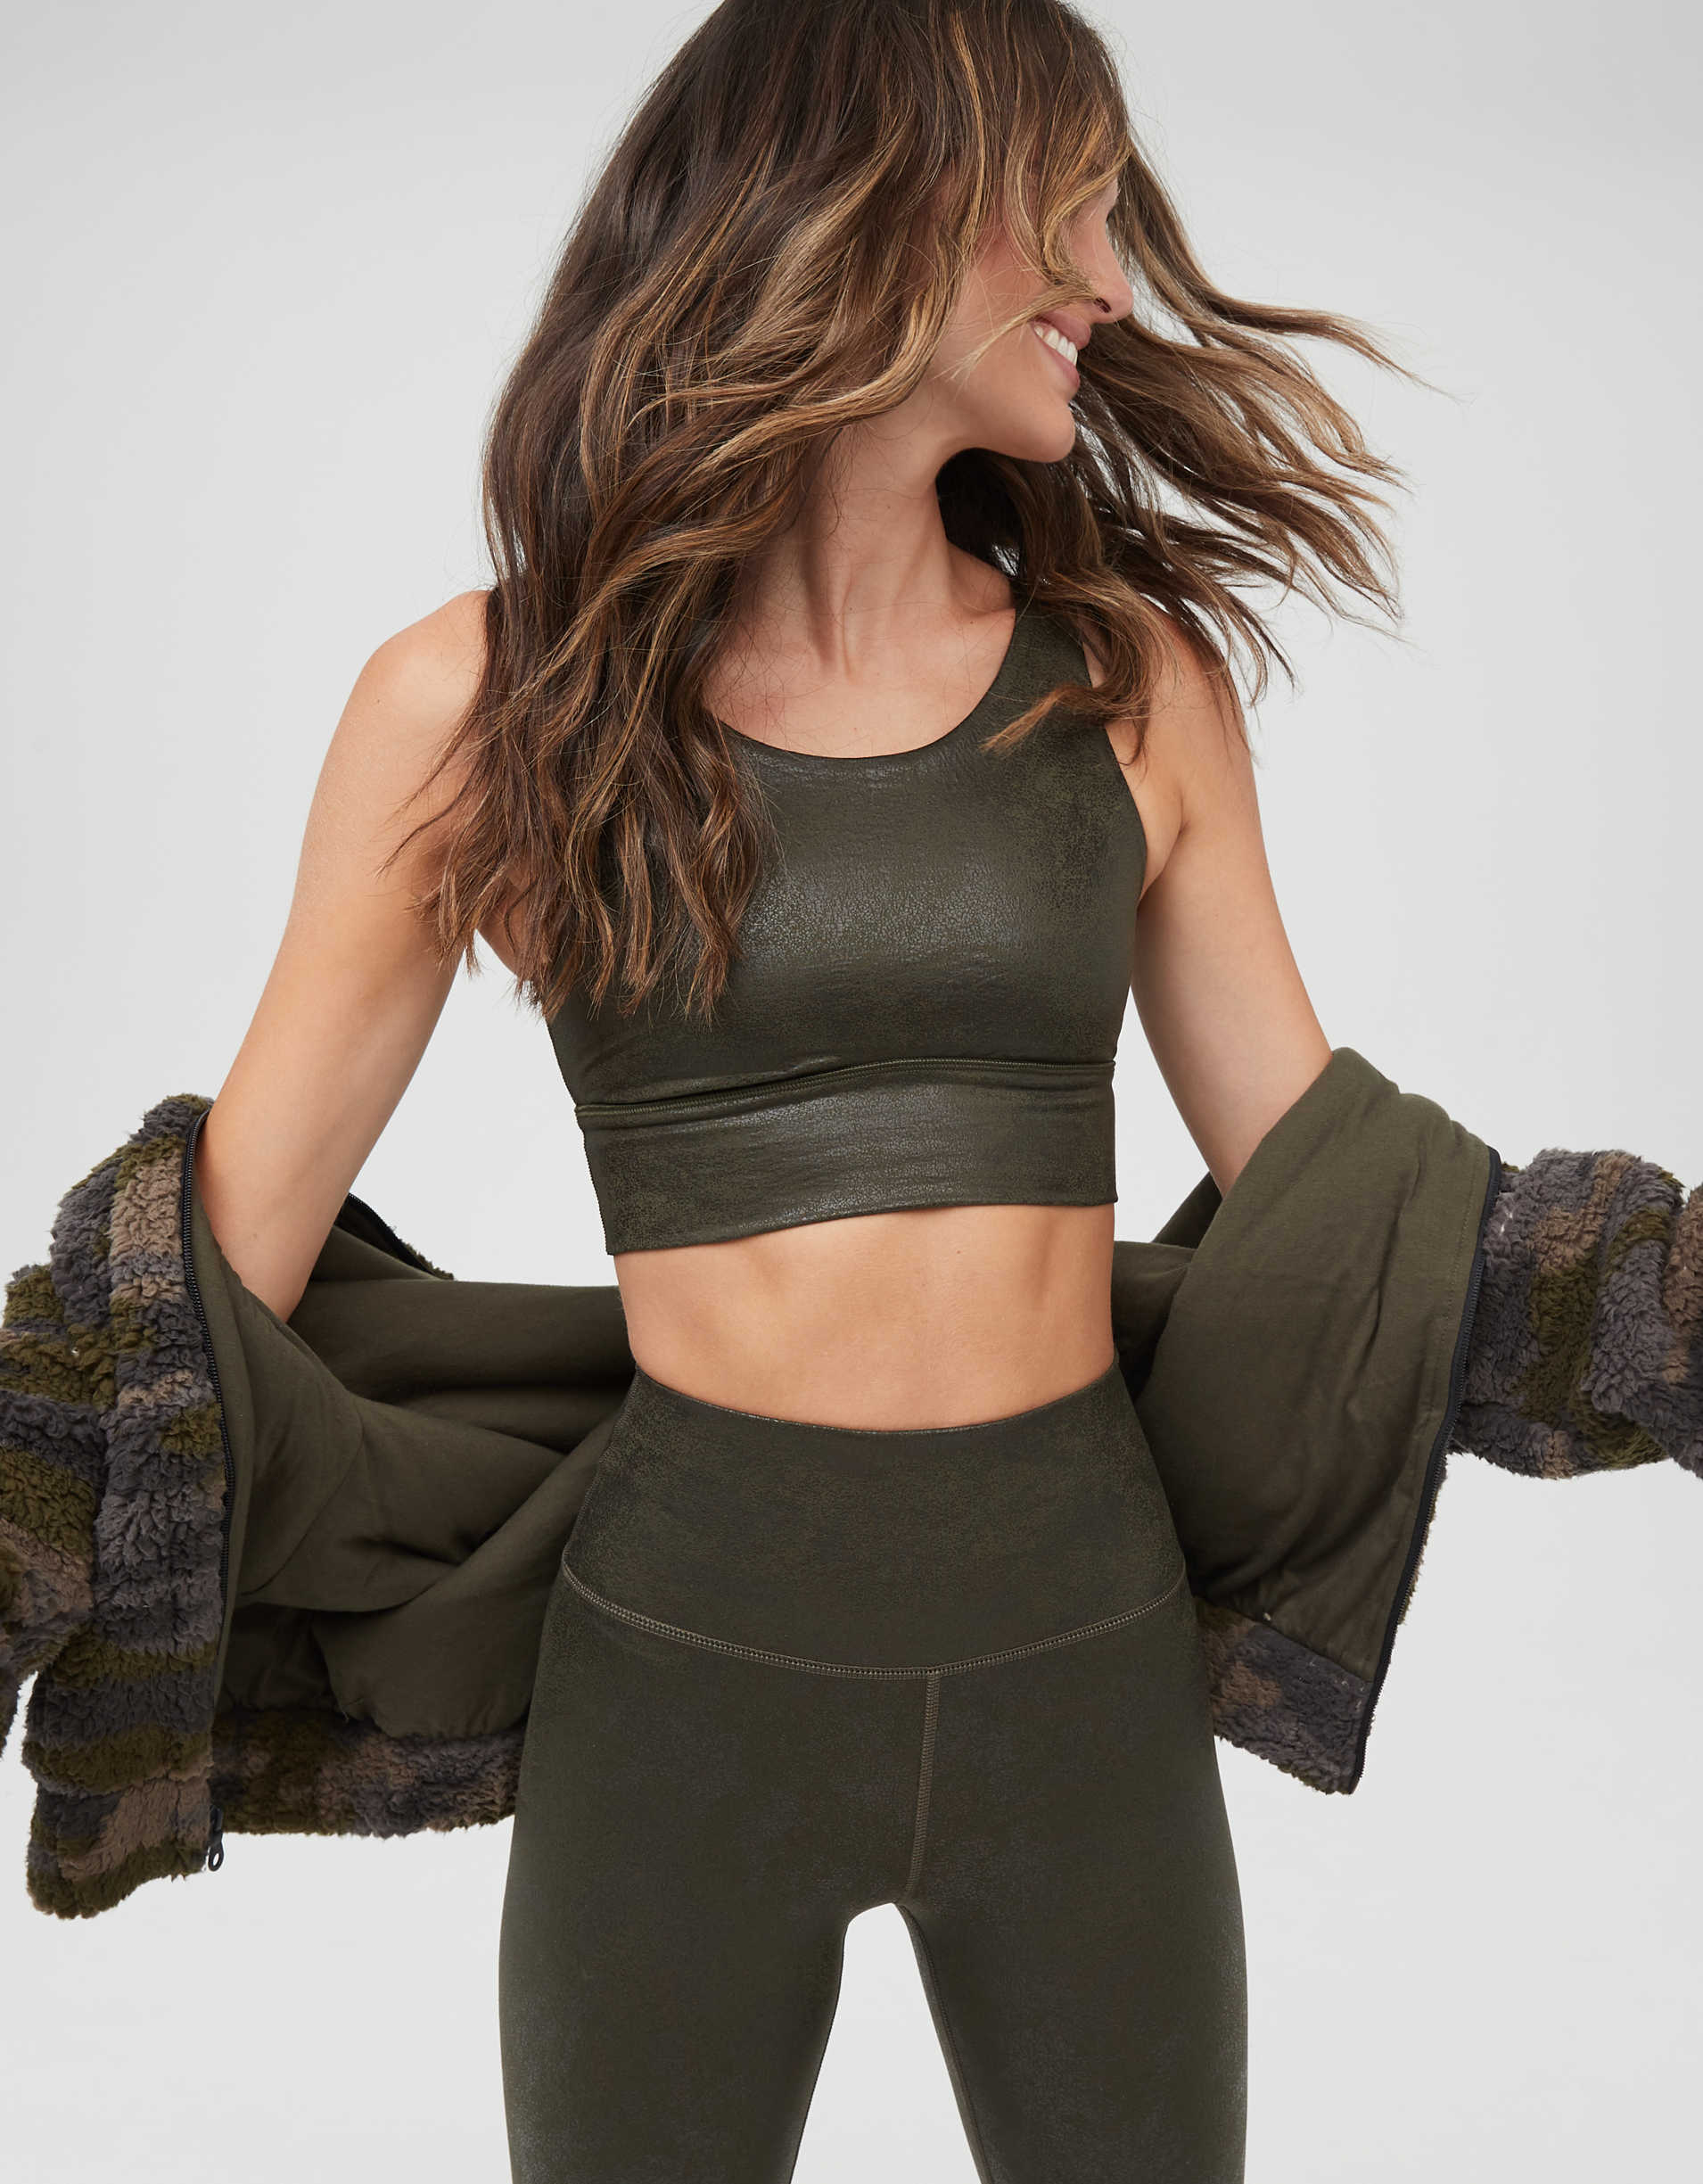 OFFLINE The Hugger Crackle Sports Bra